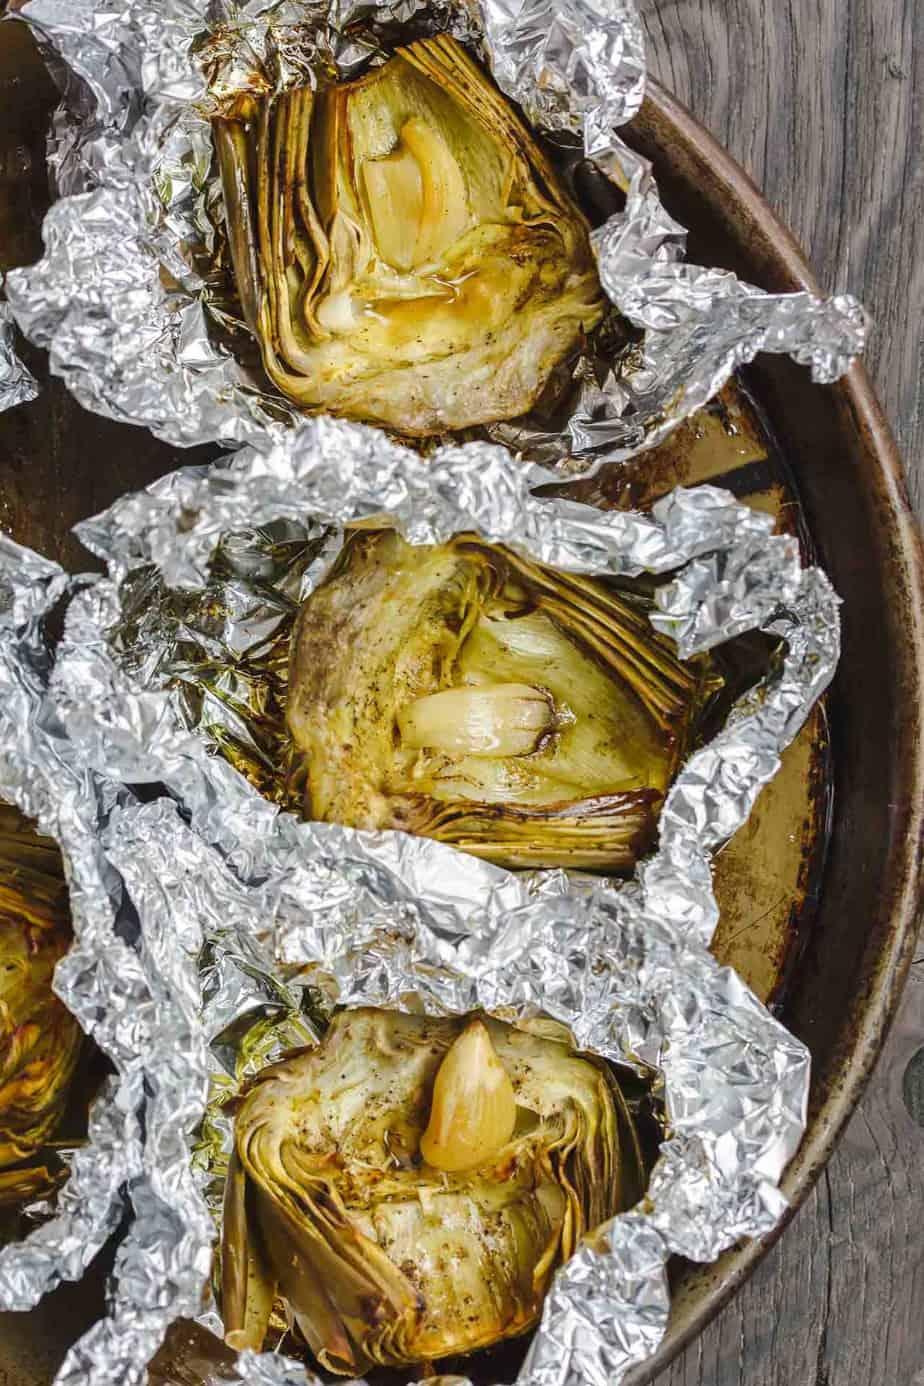 Roasted Artichoke in Foil